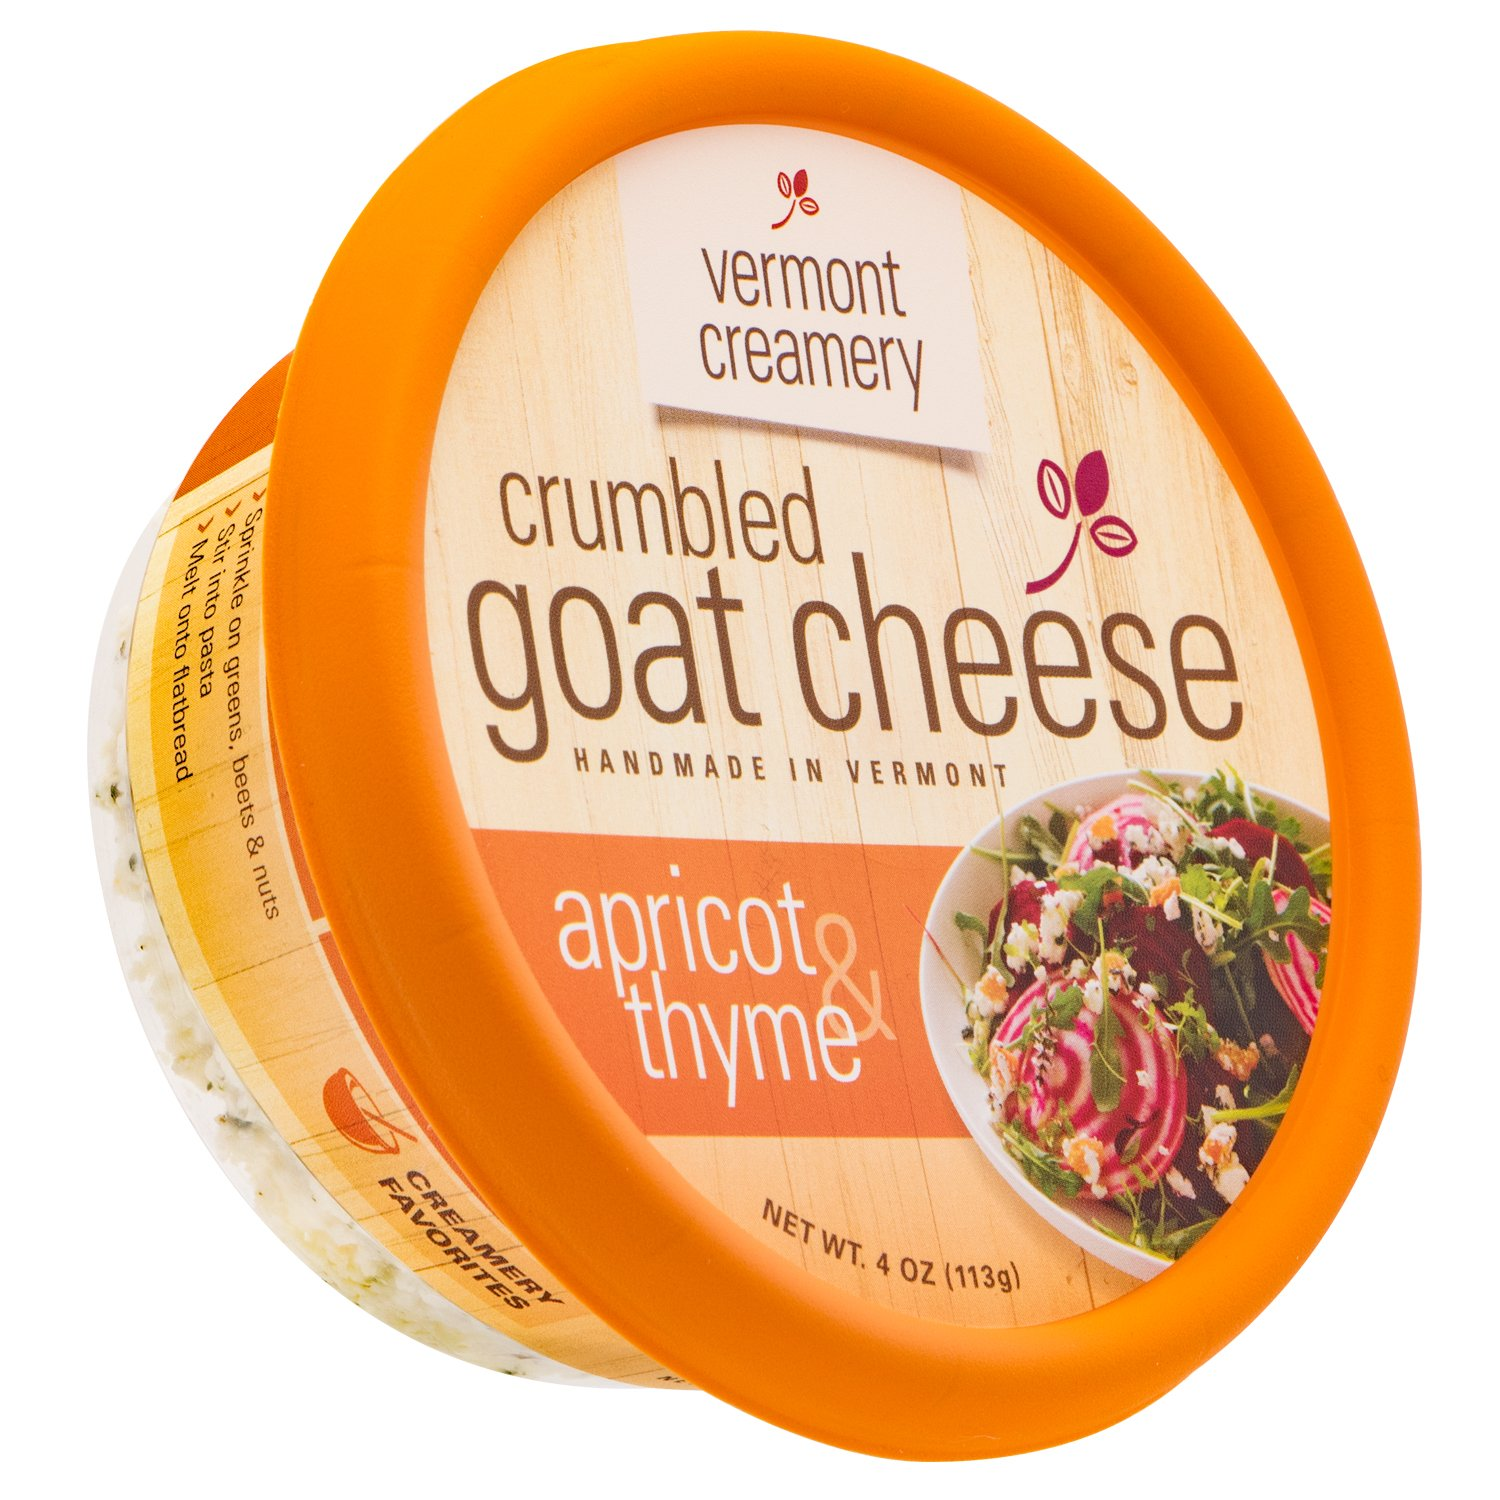 Vermont Creamery Crumbled Goat Cheese with Apricot and Thyme, 4 oz